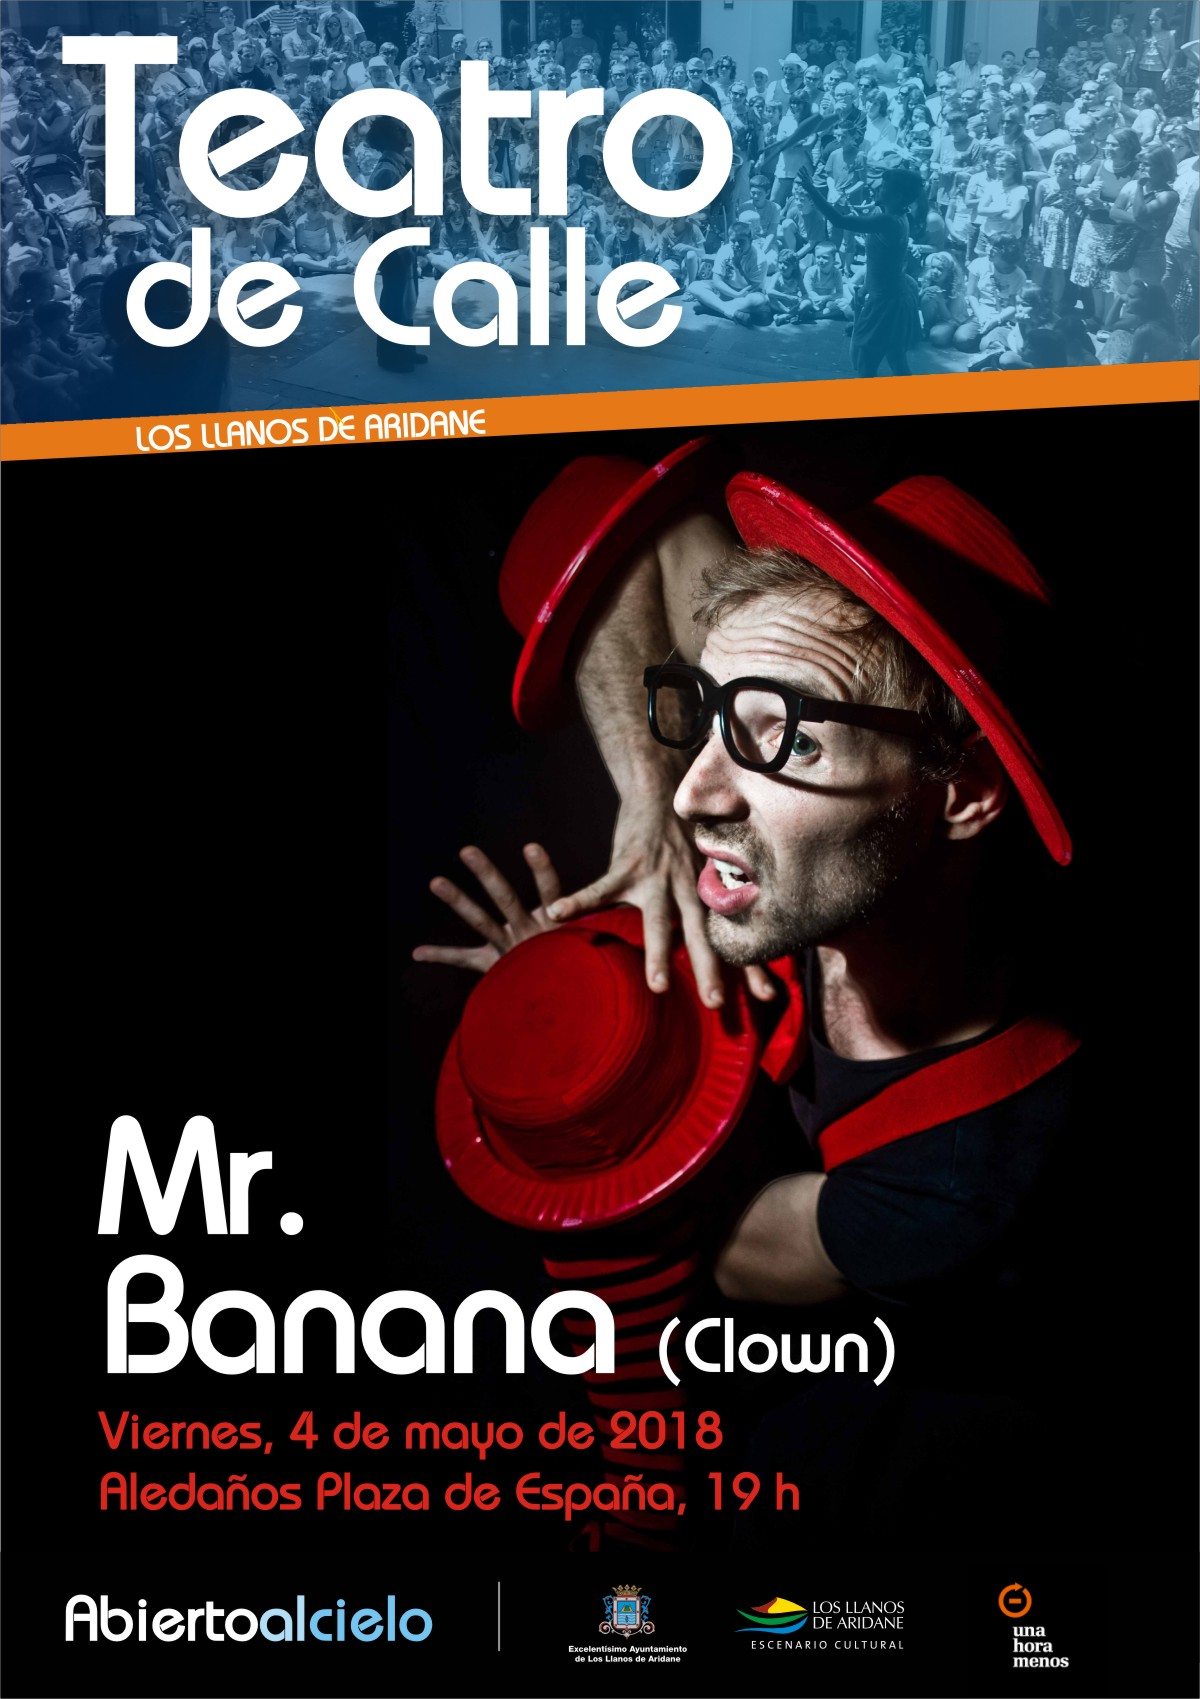 Teatro de Calle. Mr. Banana (Clown)